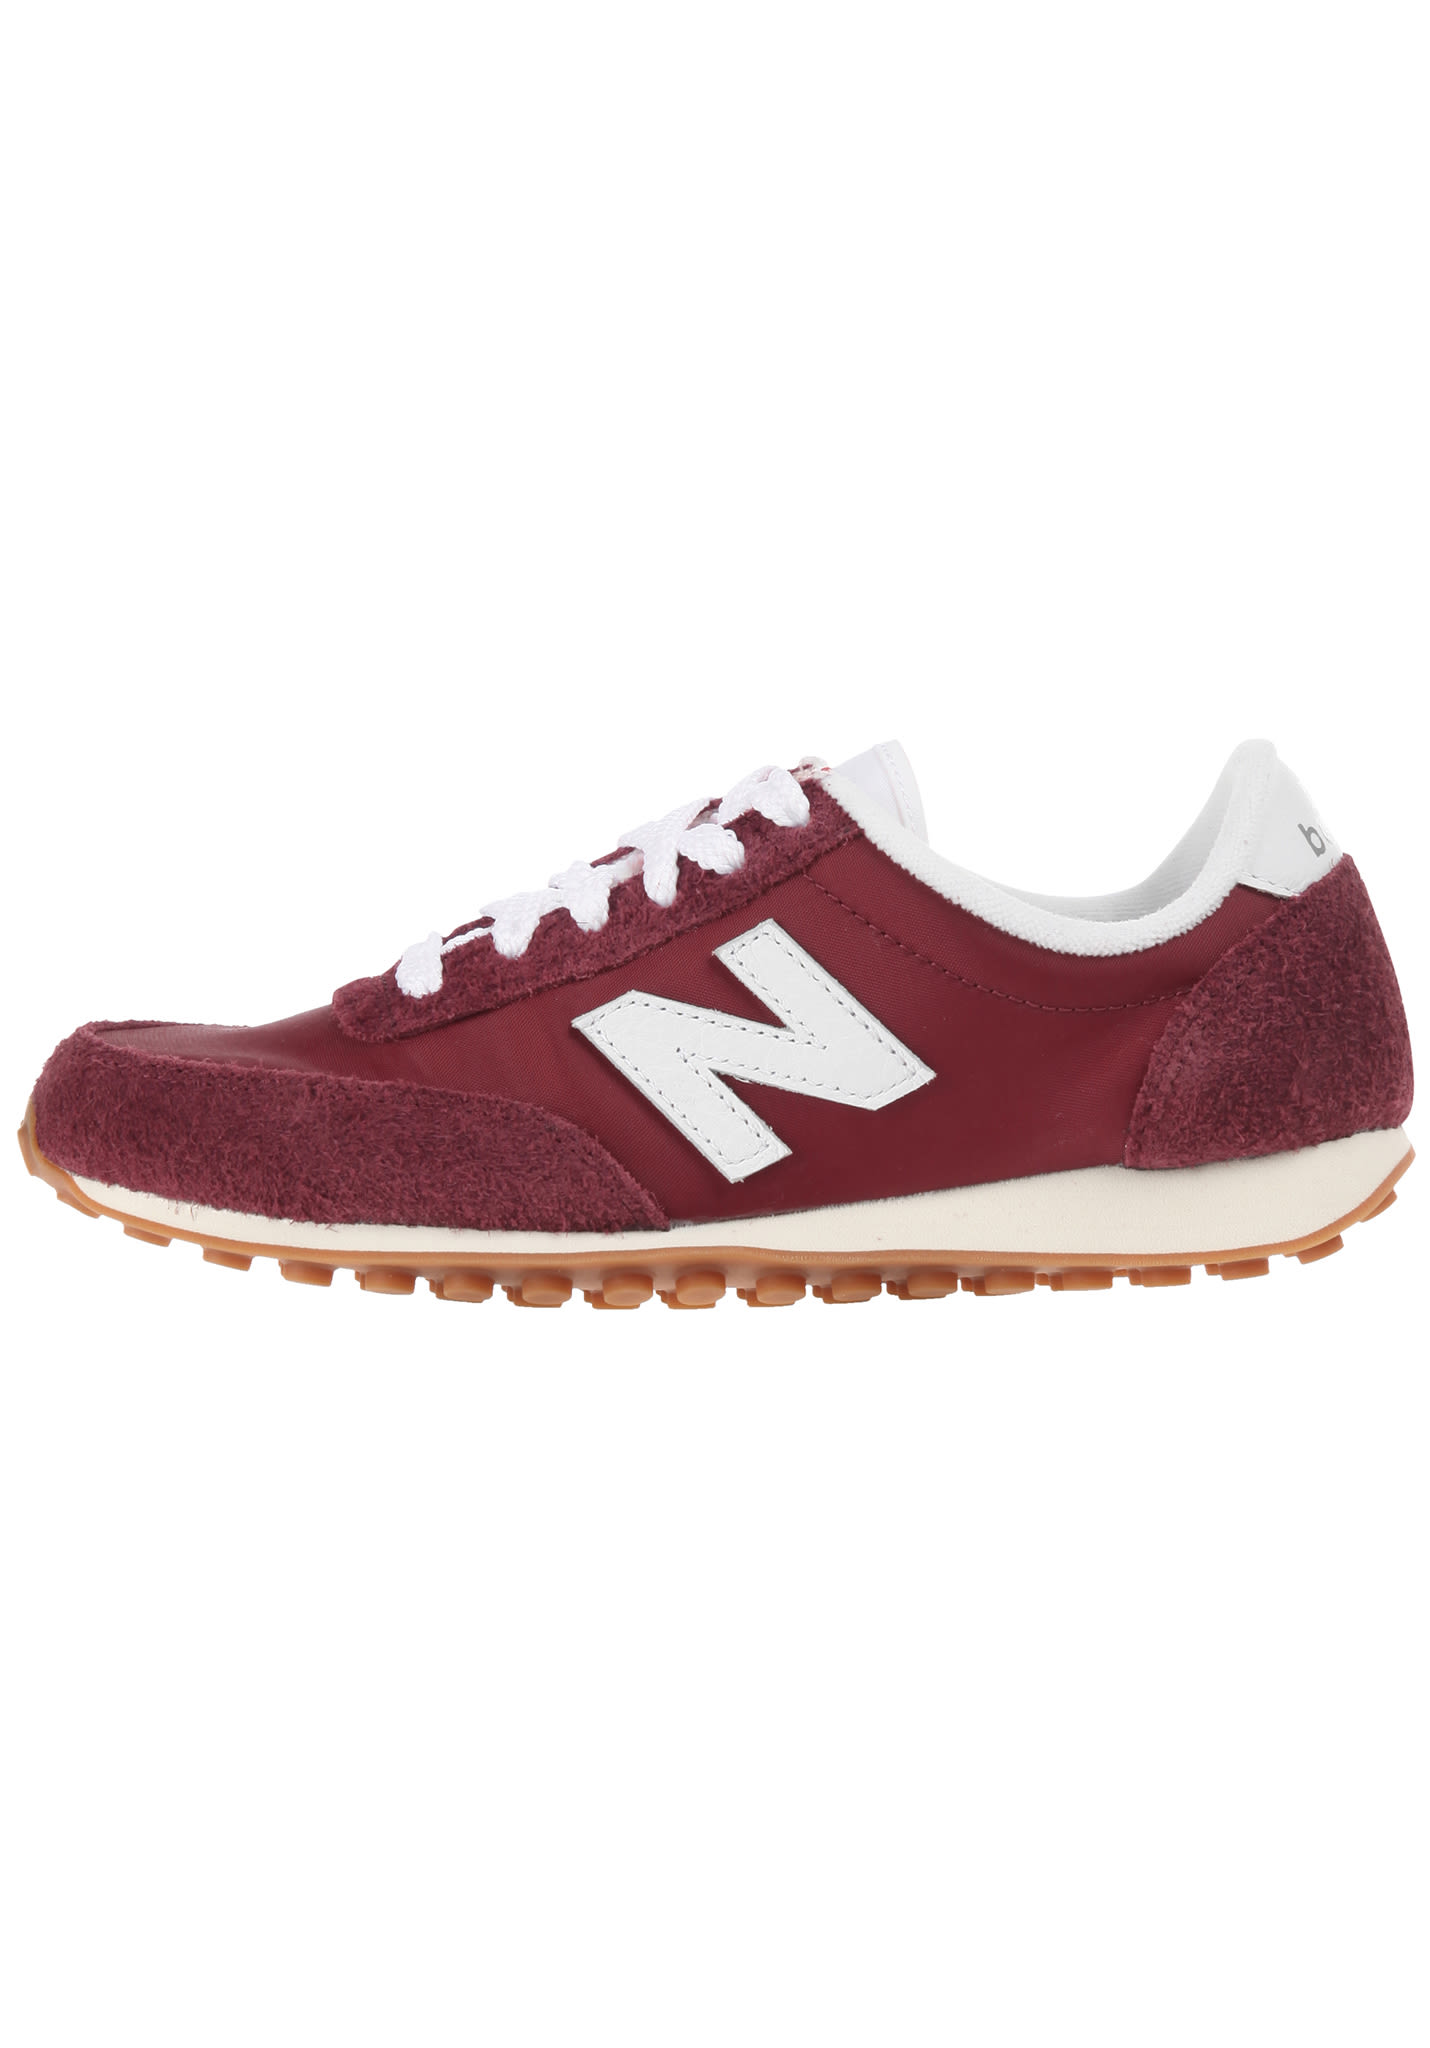 86529478c2e3 NEW BALANCE U410 D - Sneakers - Red - Planet Sports